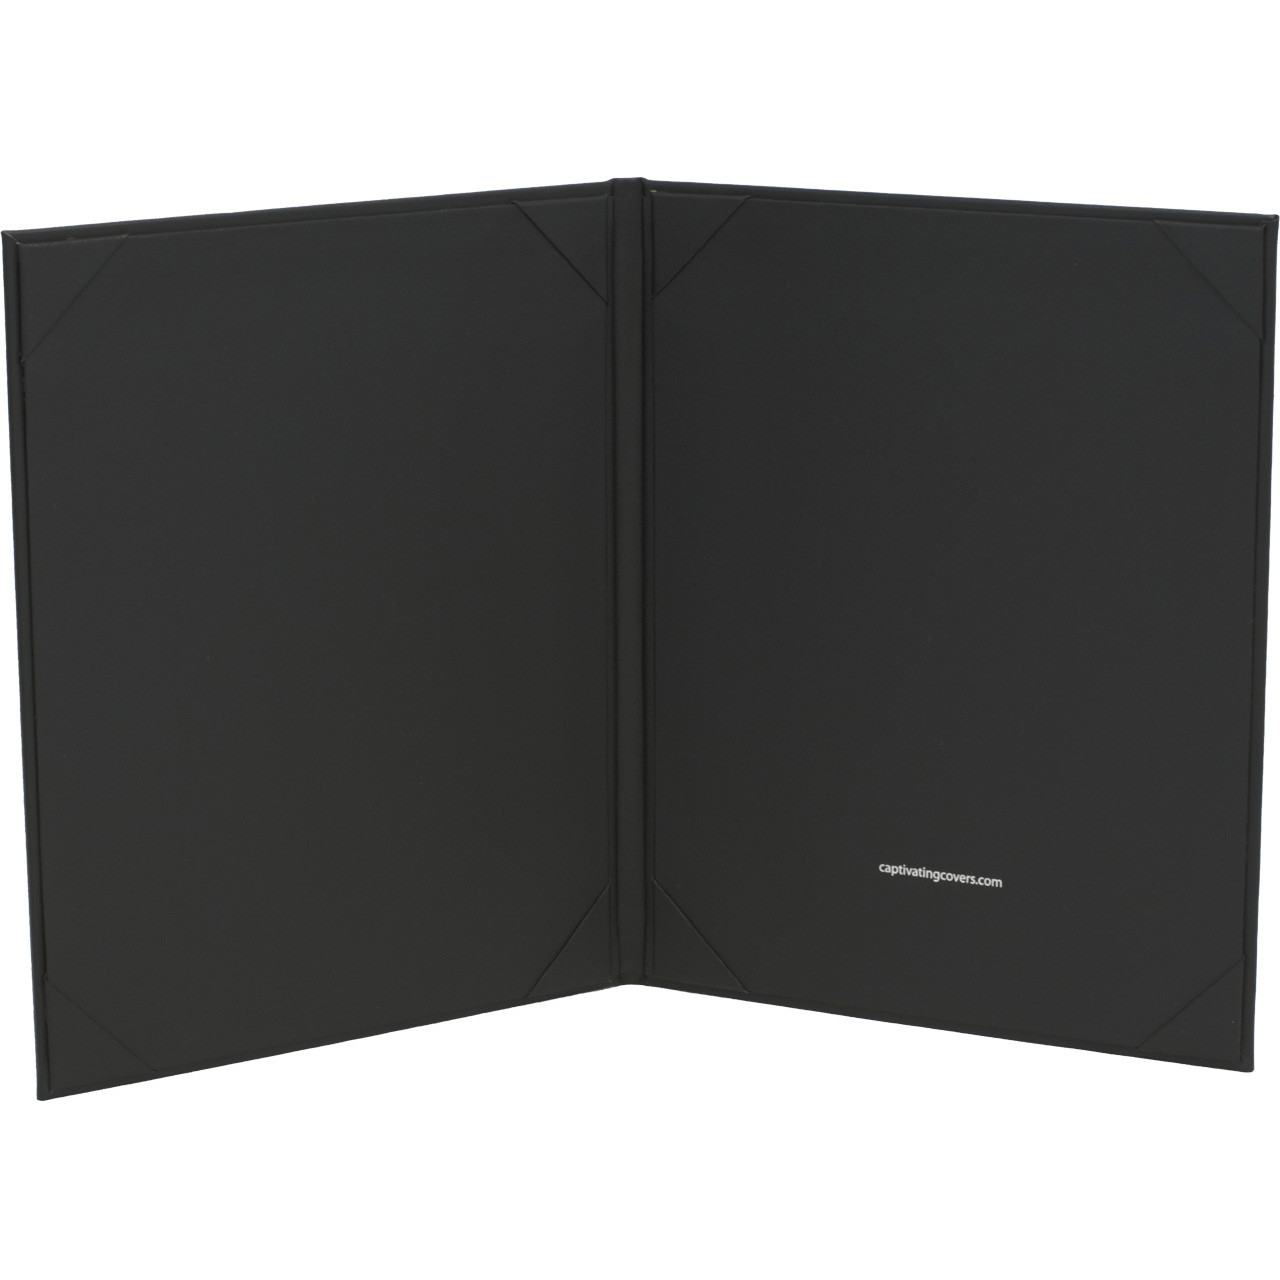 Black Imitation Leather Menu Cover, 8.5 in. x 11 in. Insert, 2-Panels (inside view)